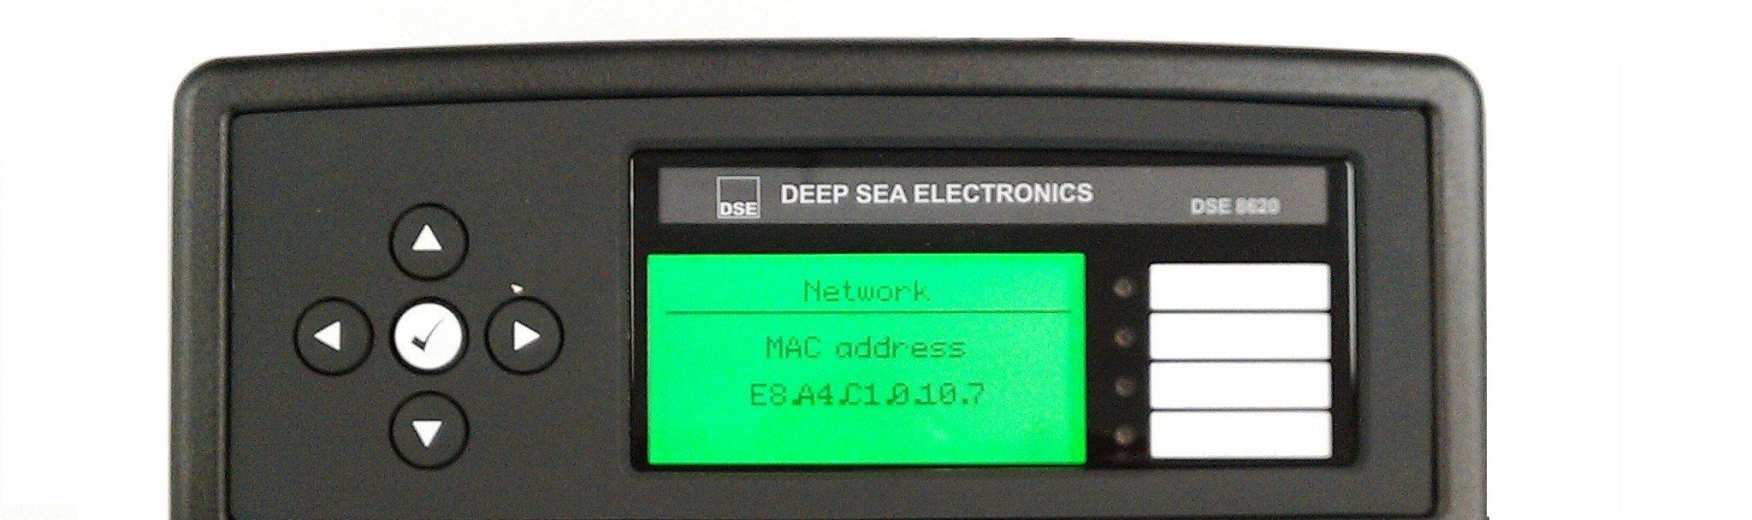 Deep Sea Electronics Plc Dse8620 Control Module Operating Manual Pdf Watt Led Driver Circuitconstant Current 300ma 12v View 6 Operation 61 Of The Is Via Push Buttons Mounted On